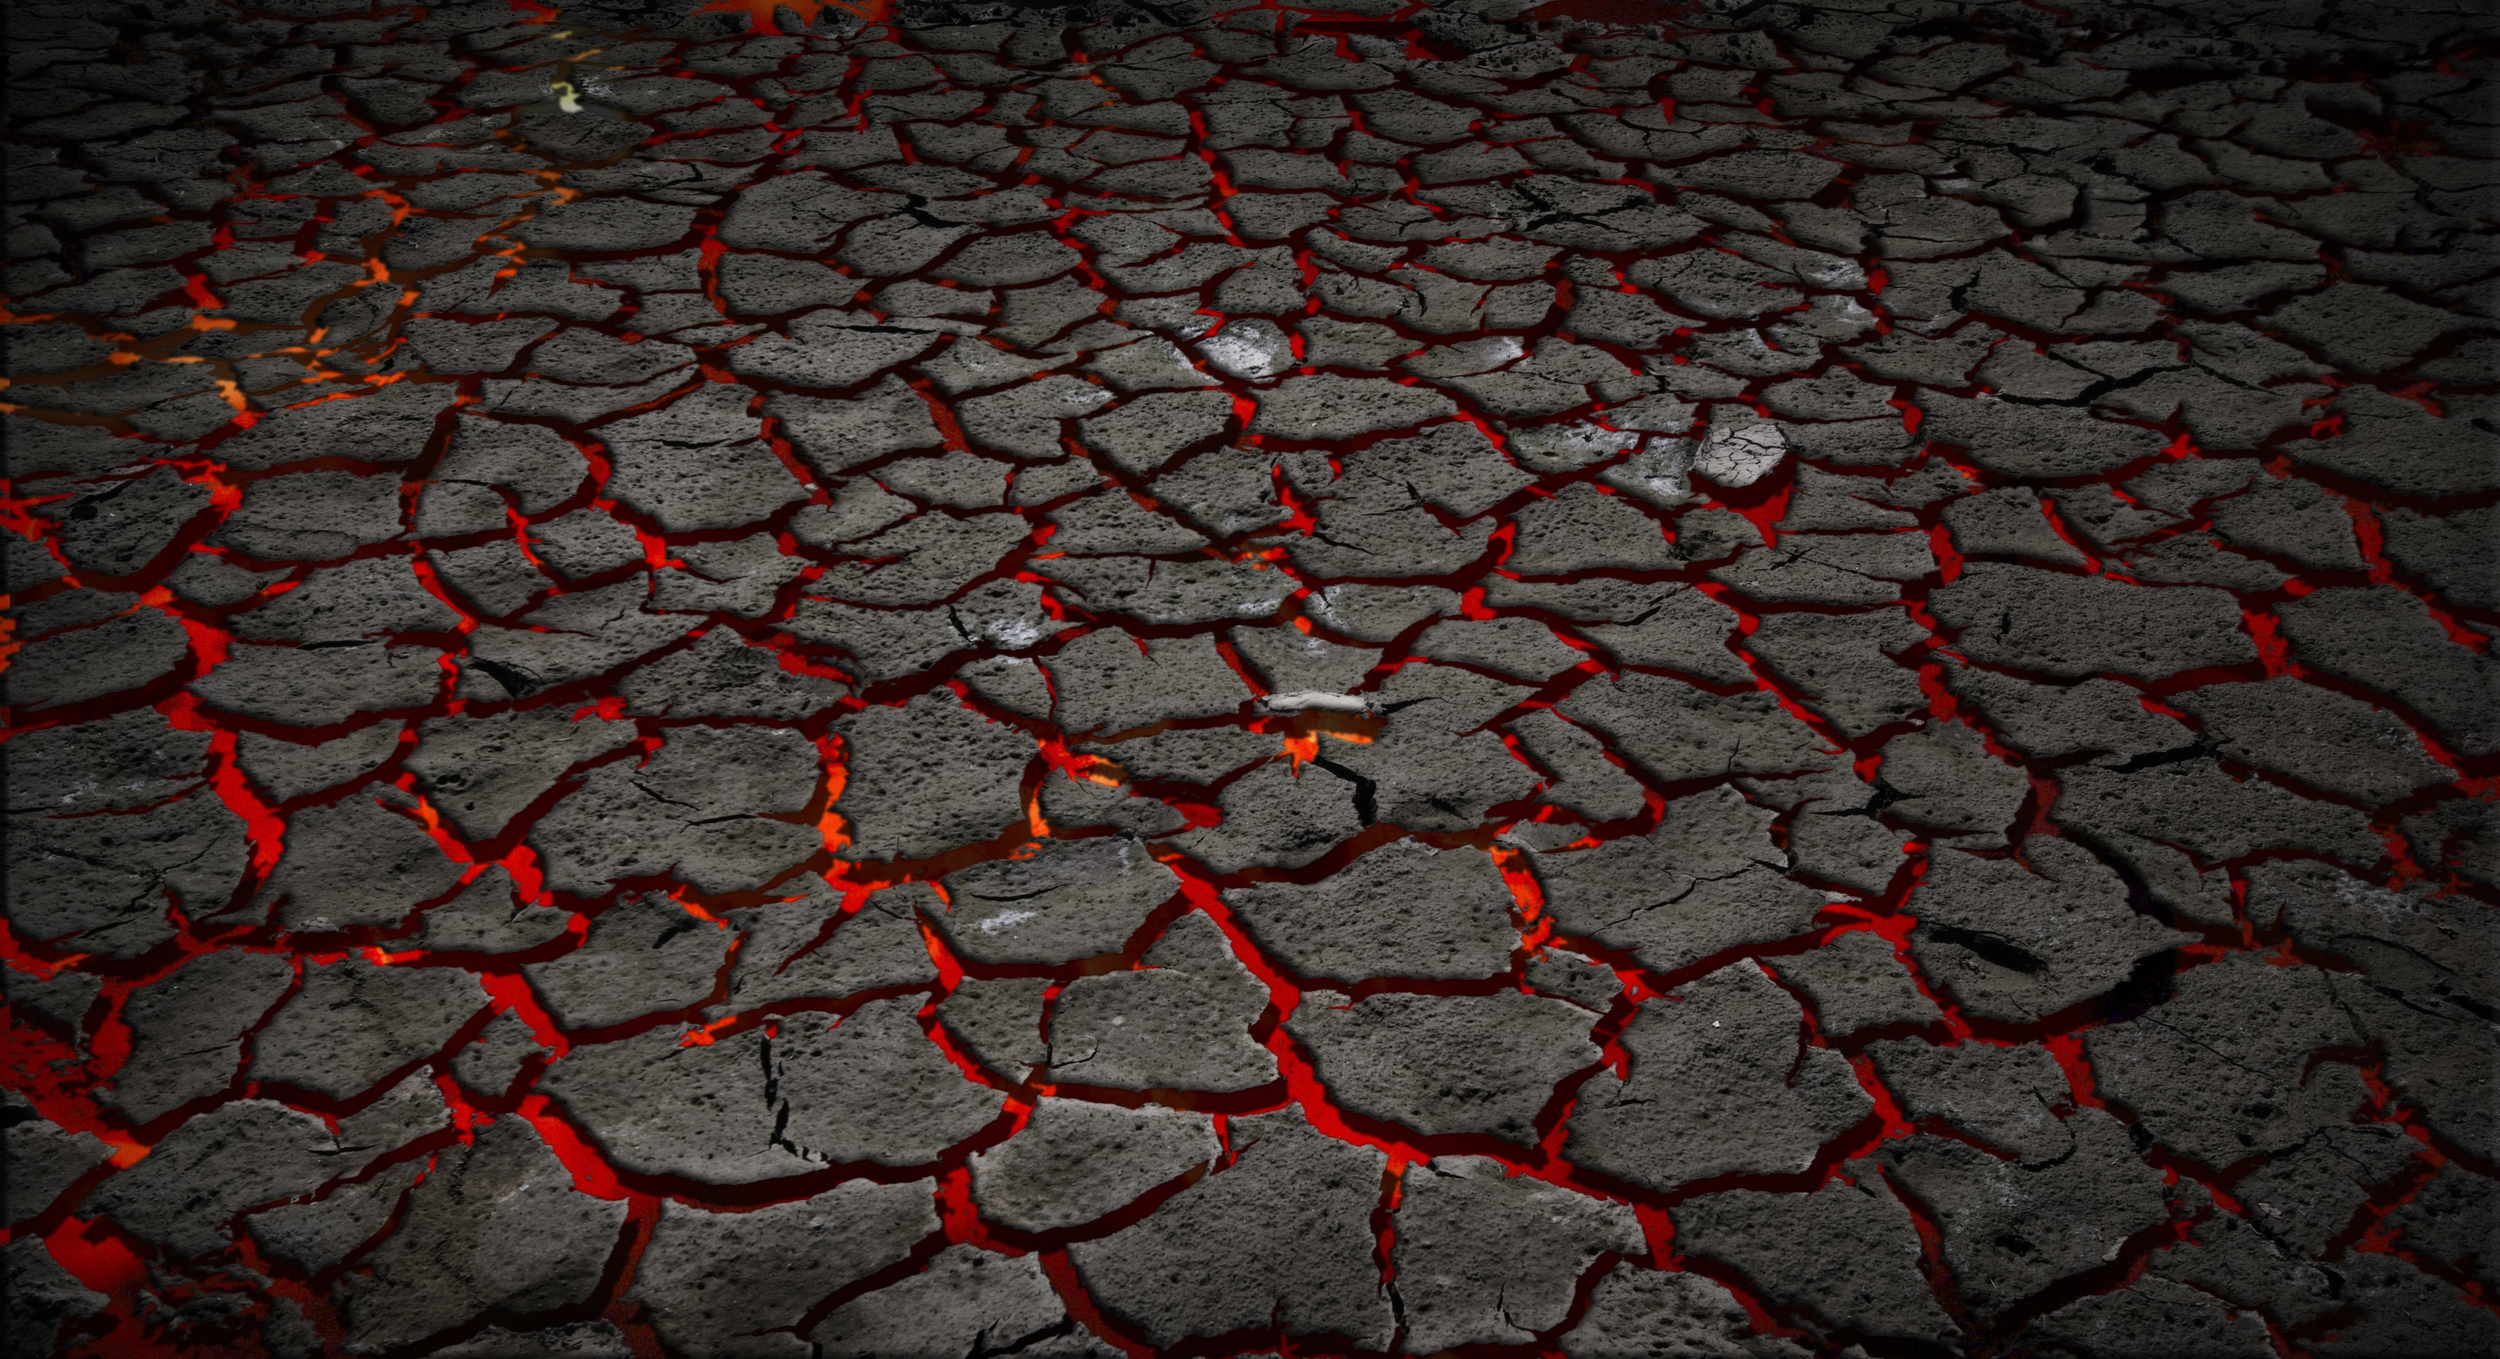 premade_magma_and_cracked_earth_stock_by_katebloomfield-d4zstoi.jpg